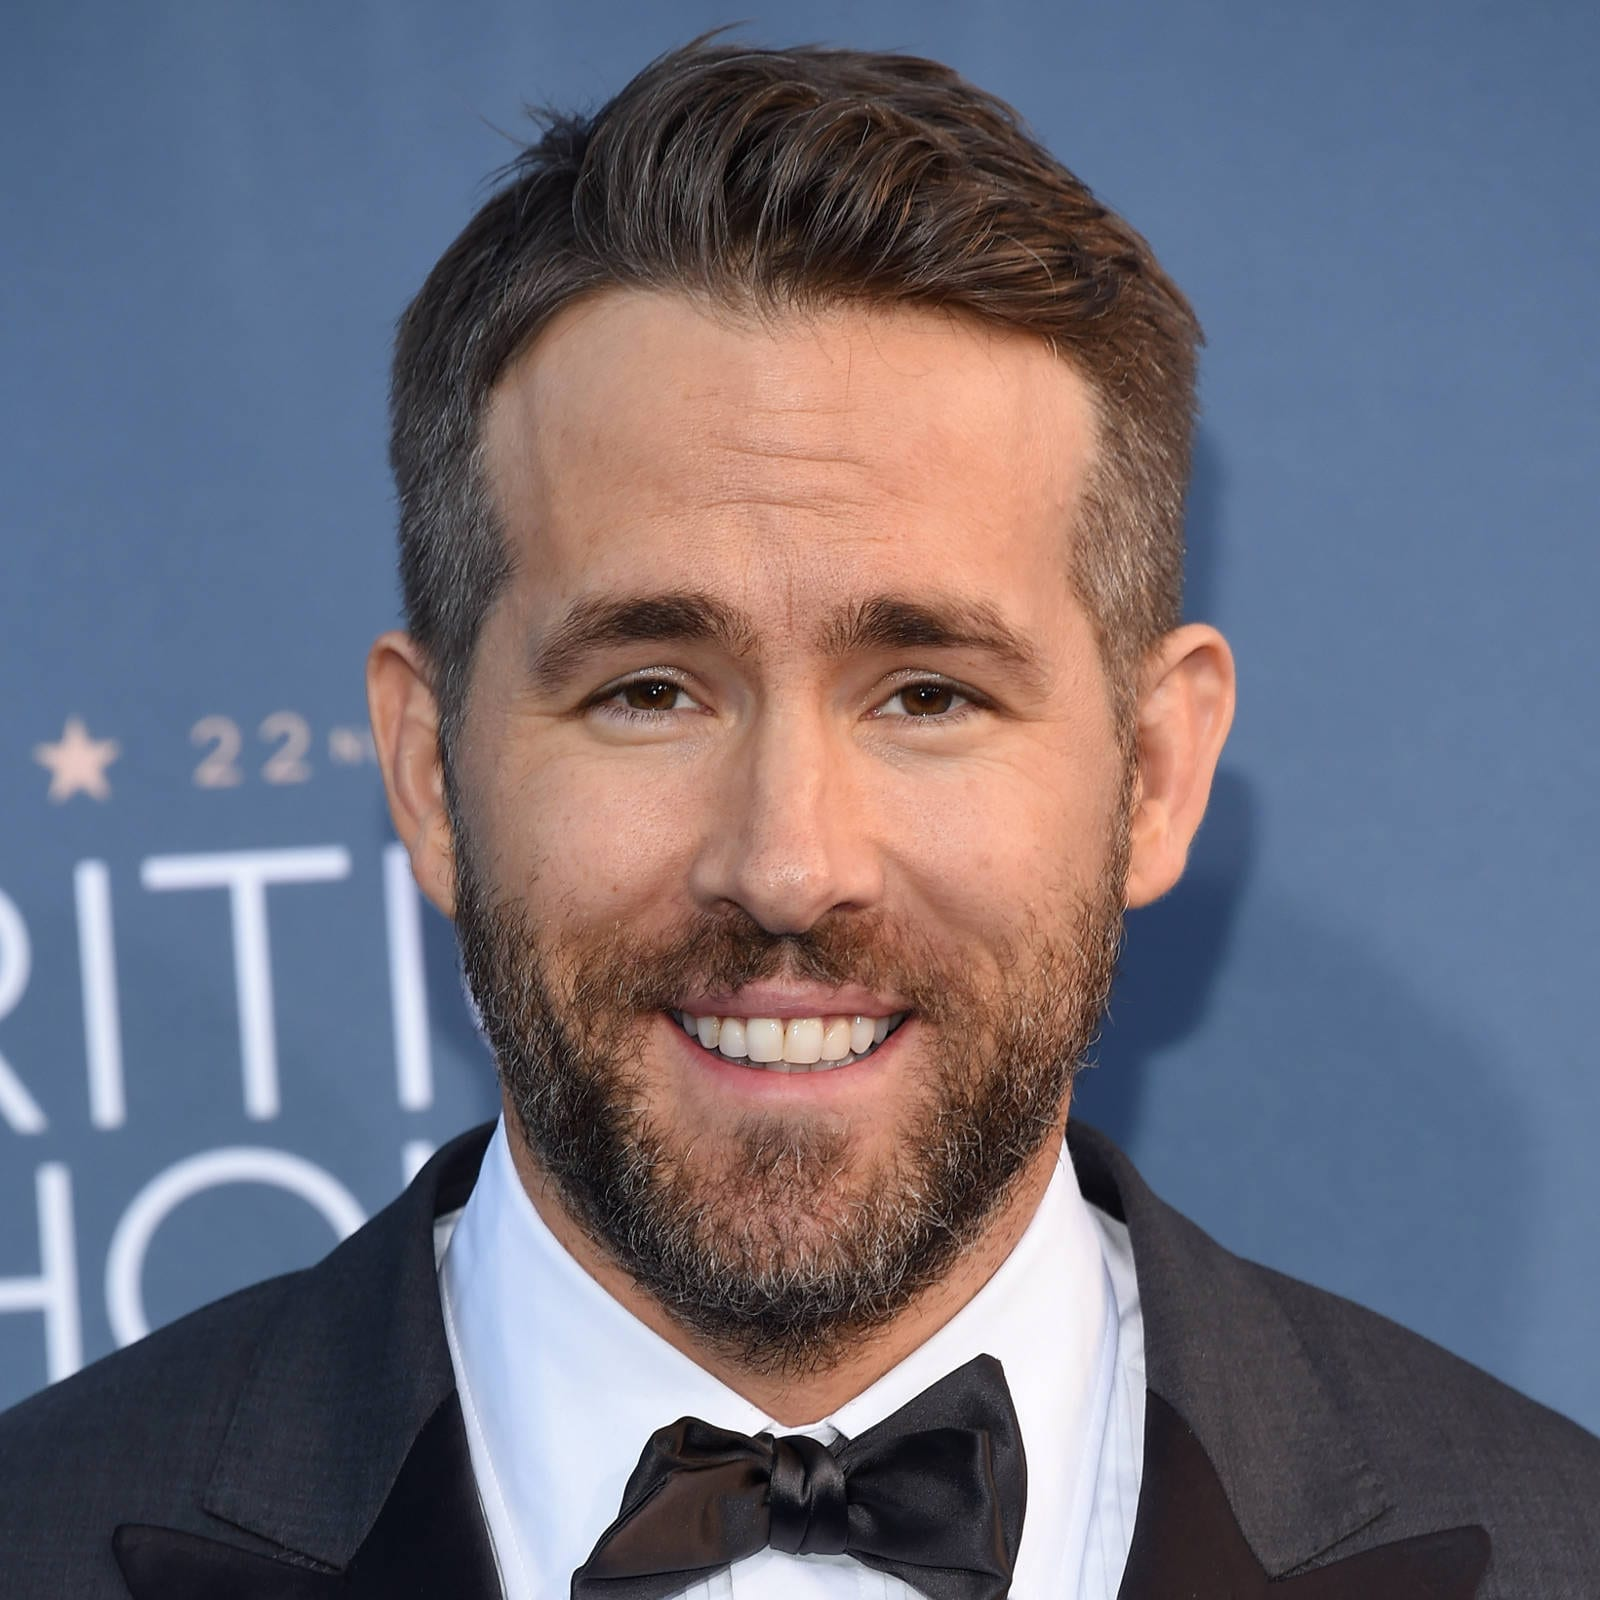 The Ryan Reynolds Hair Lookbook: His 10 Best Styles Ever